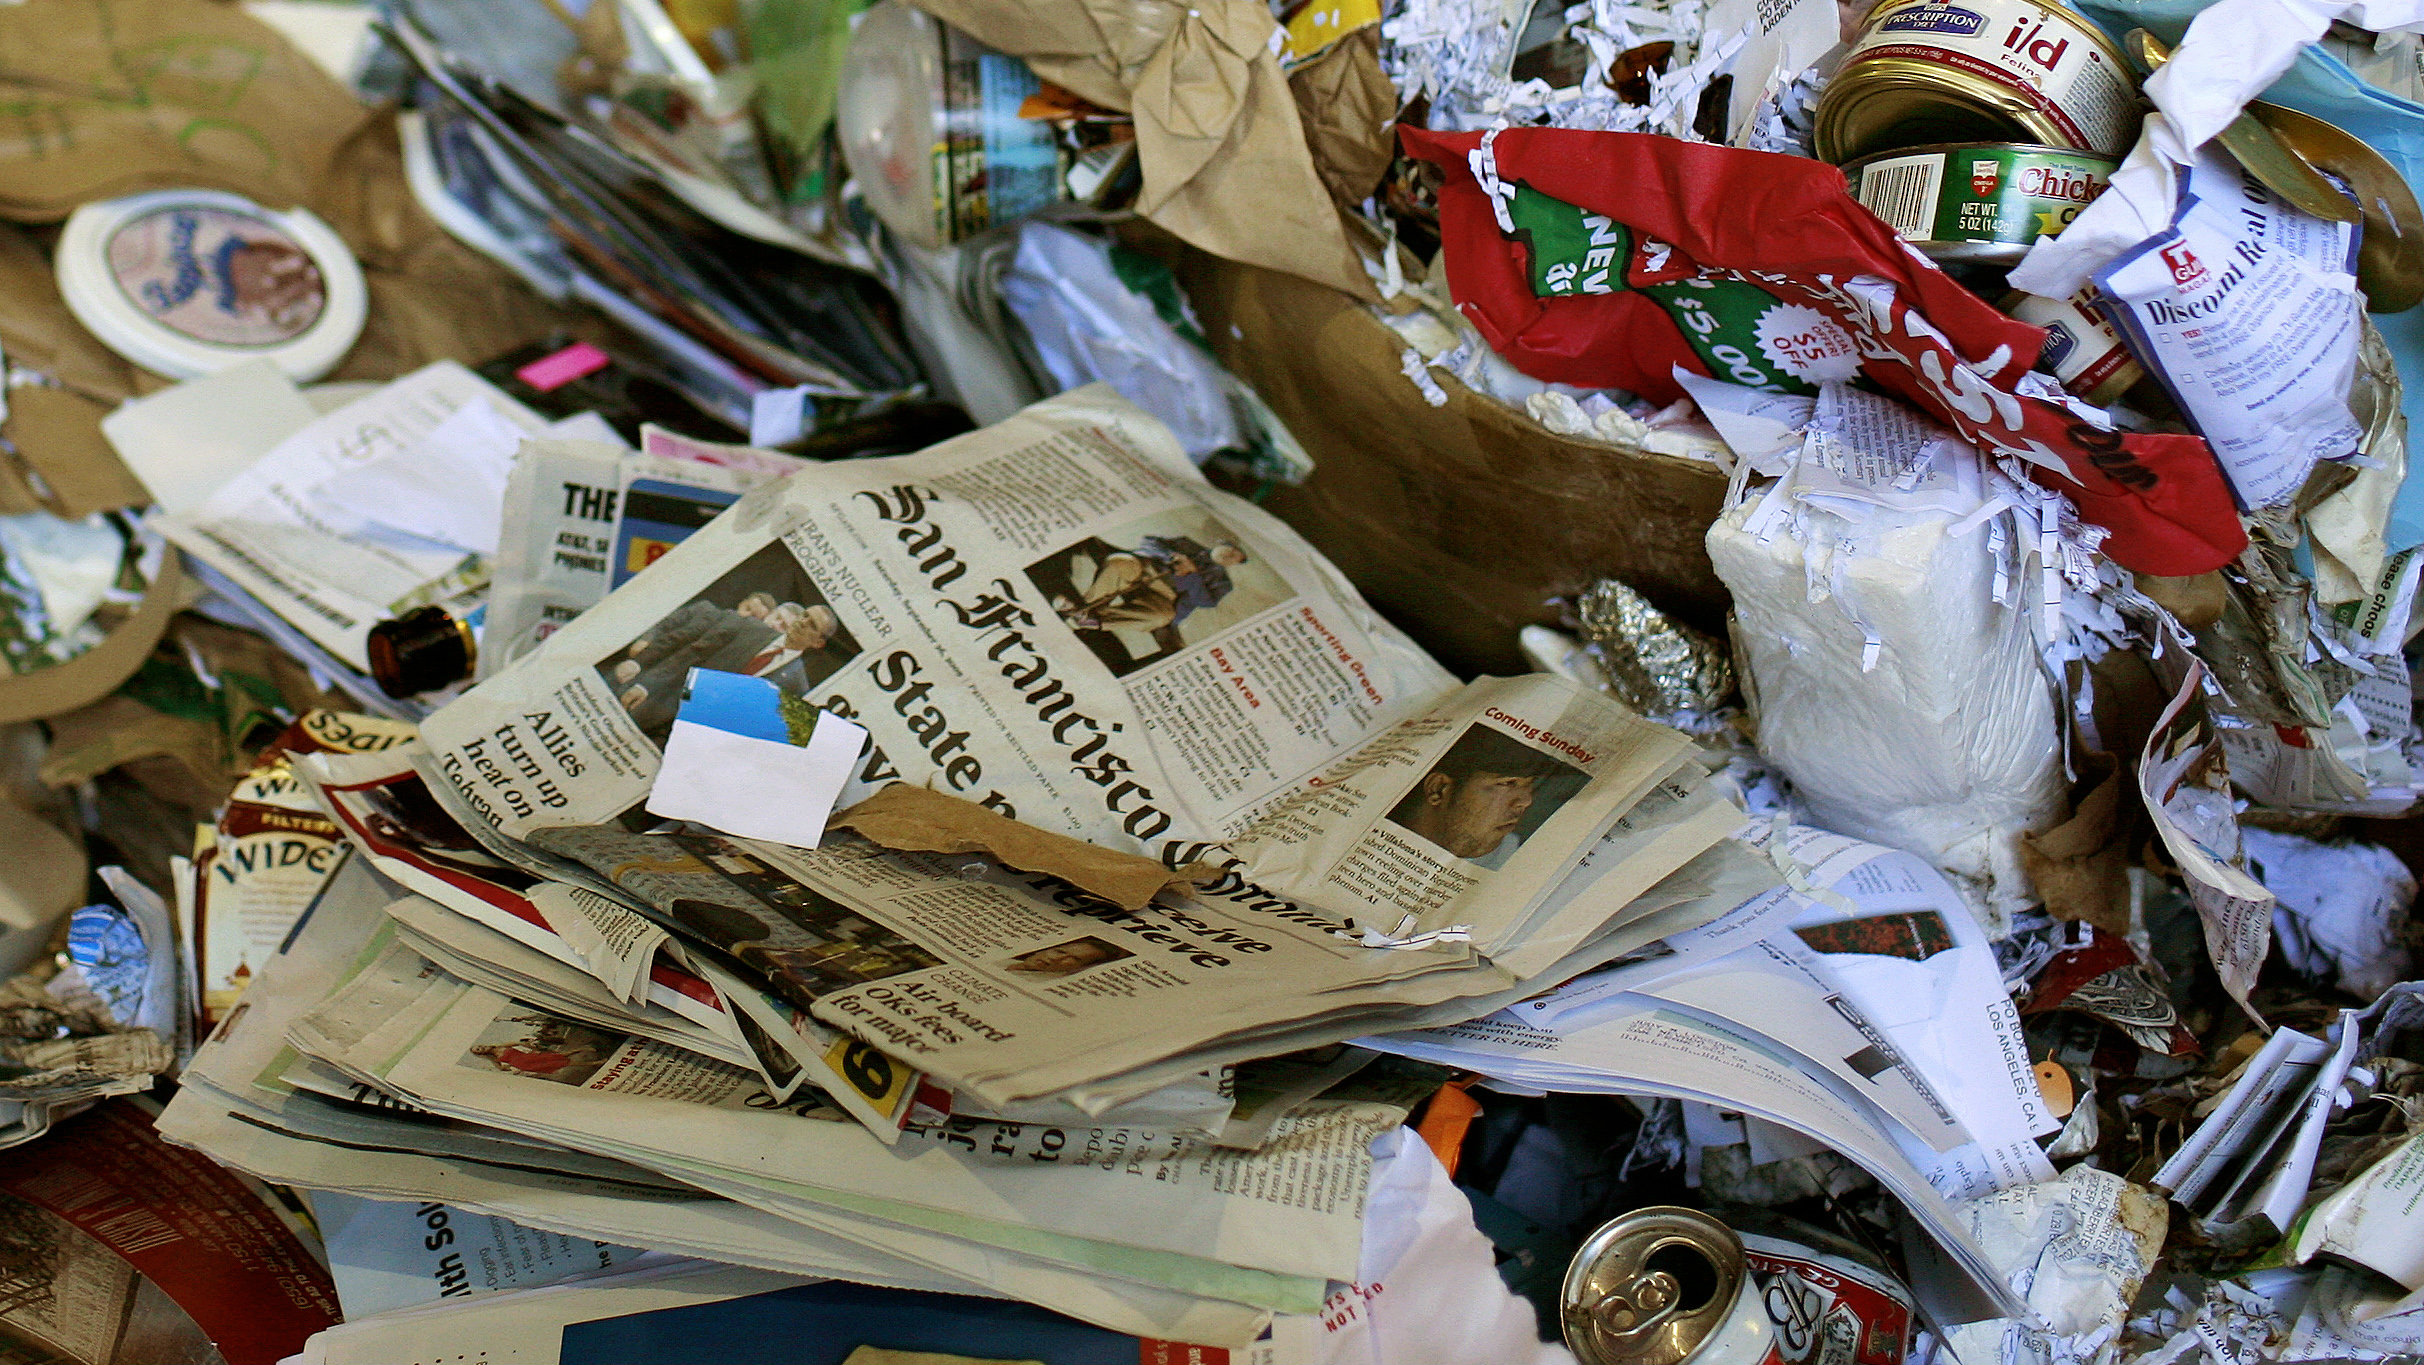 newspaper among trash